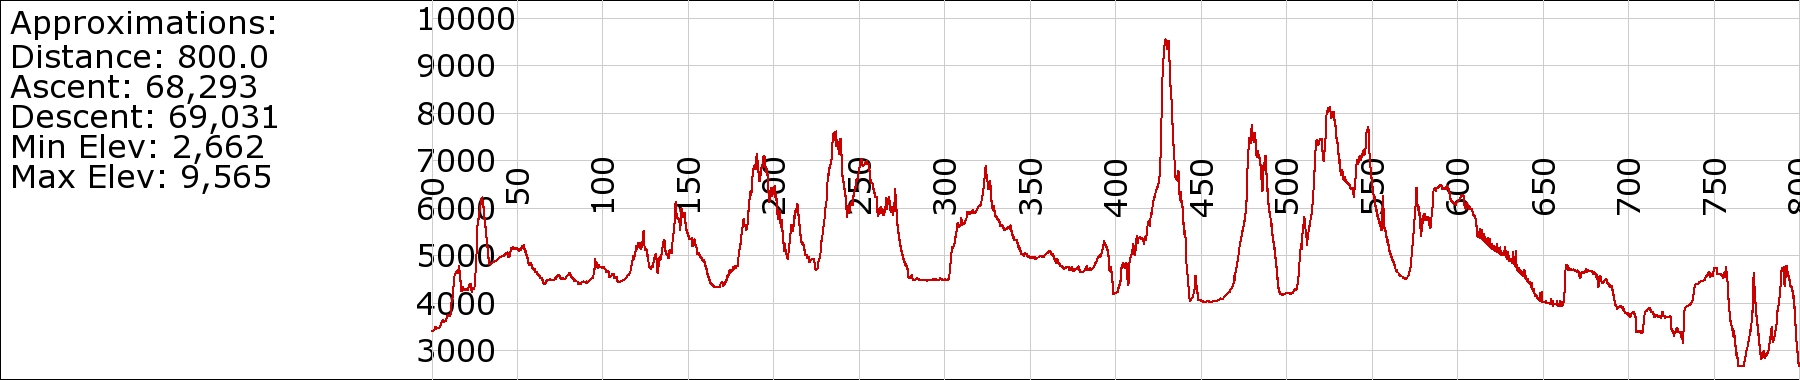 ODT Elevation Profile